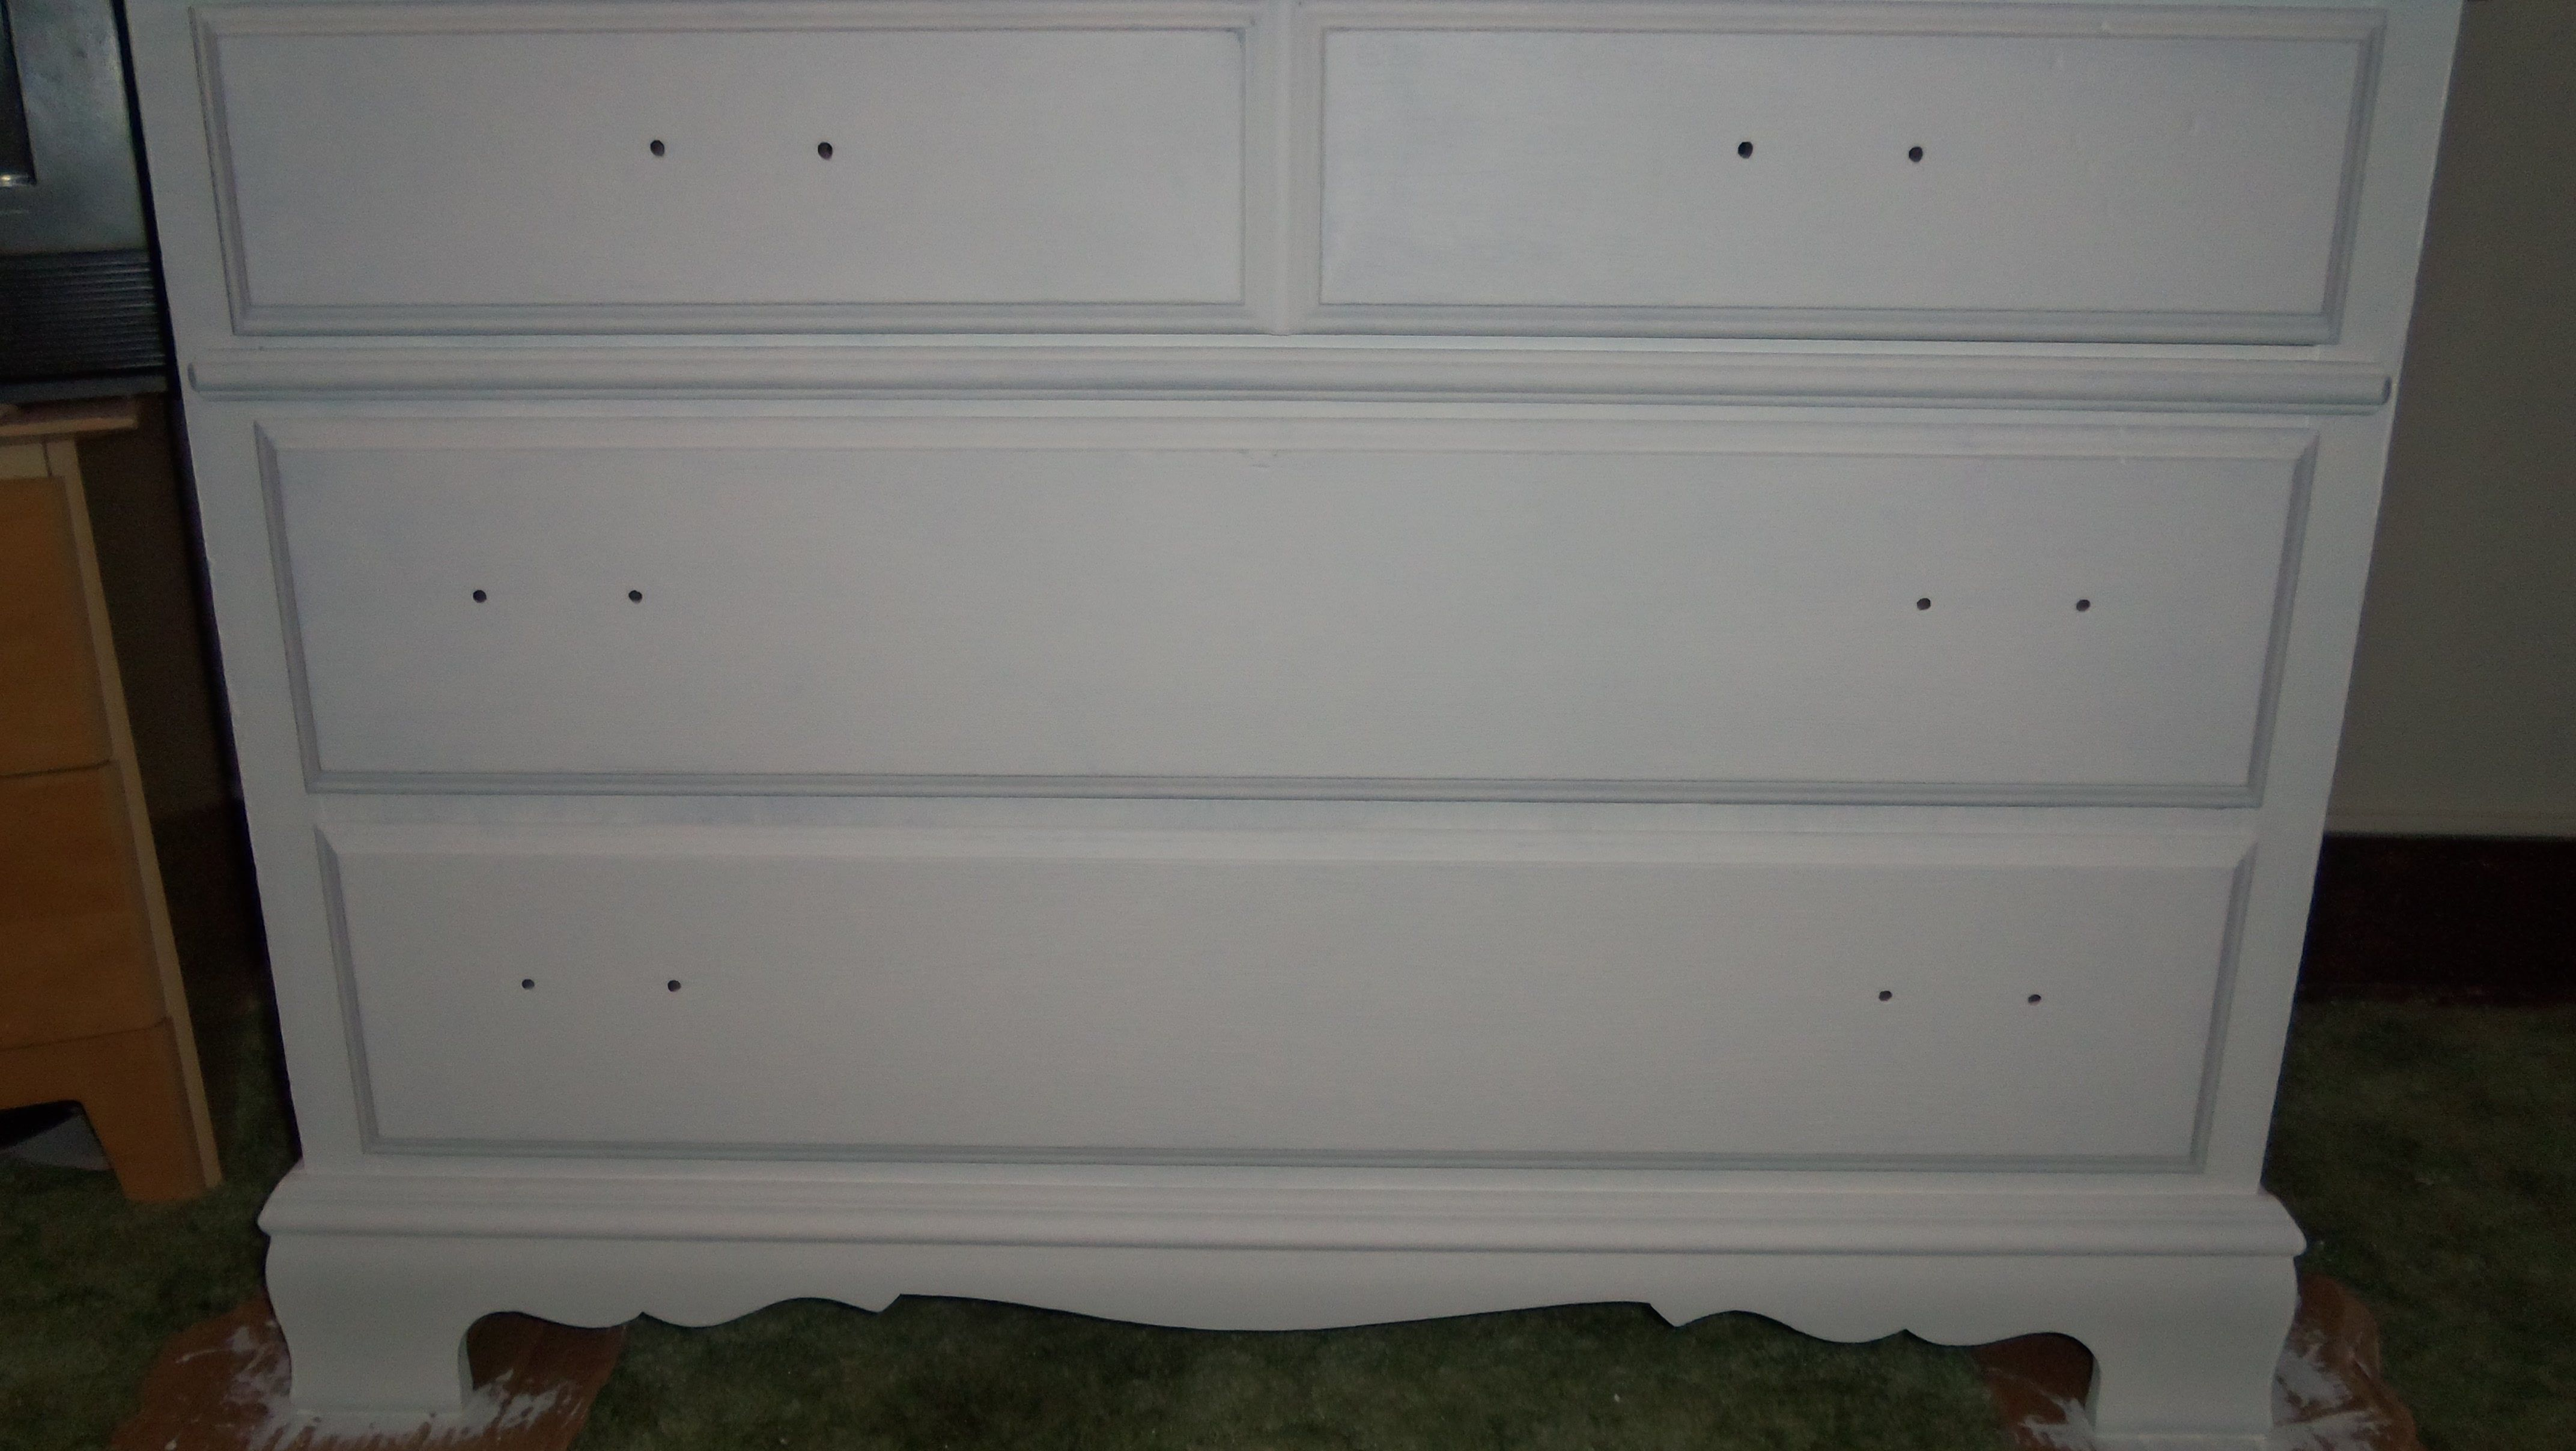 This was an old brown wooden dresser w brass look drawer pulls that